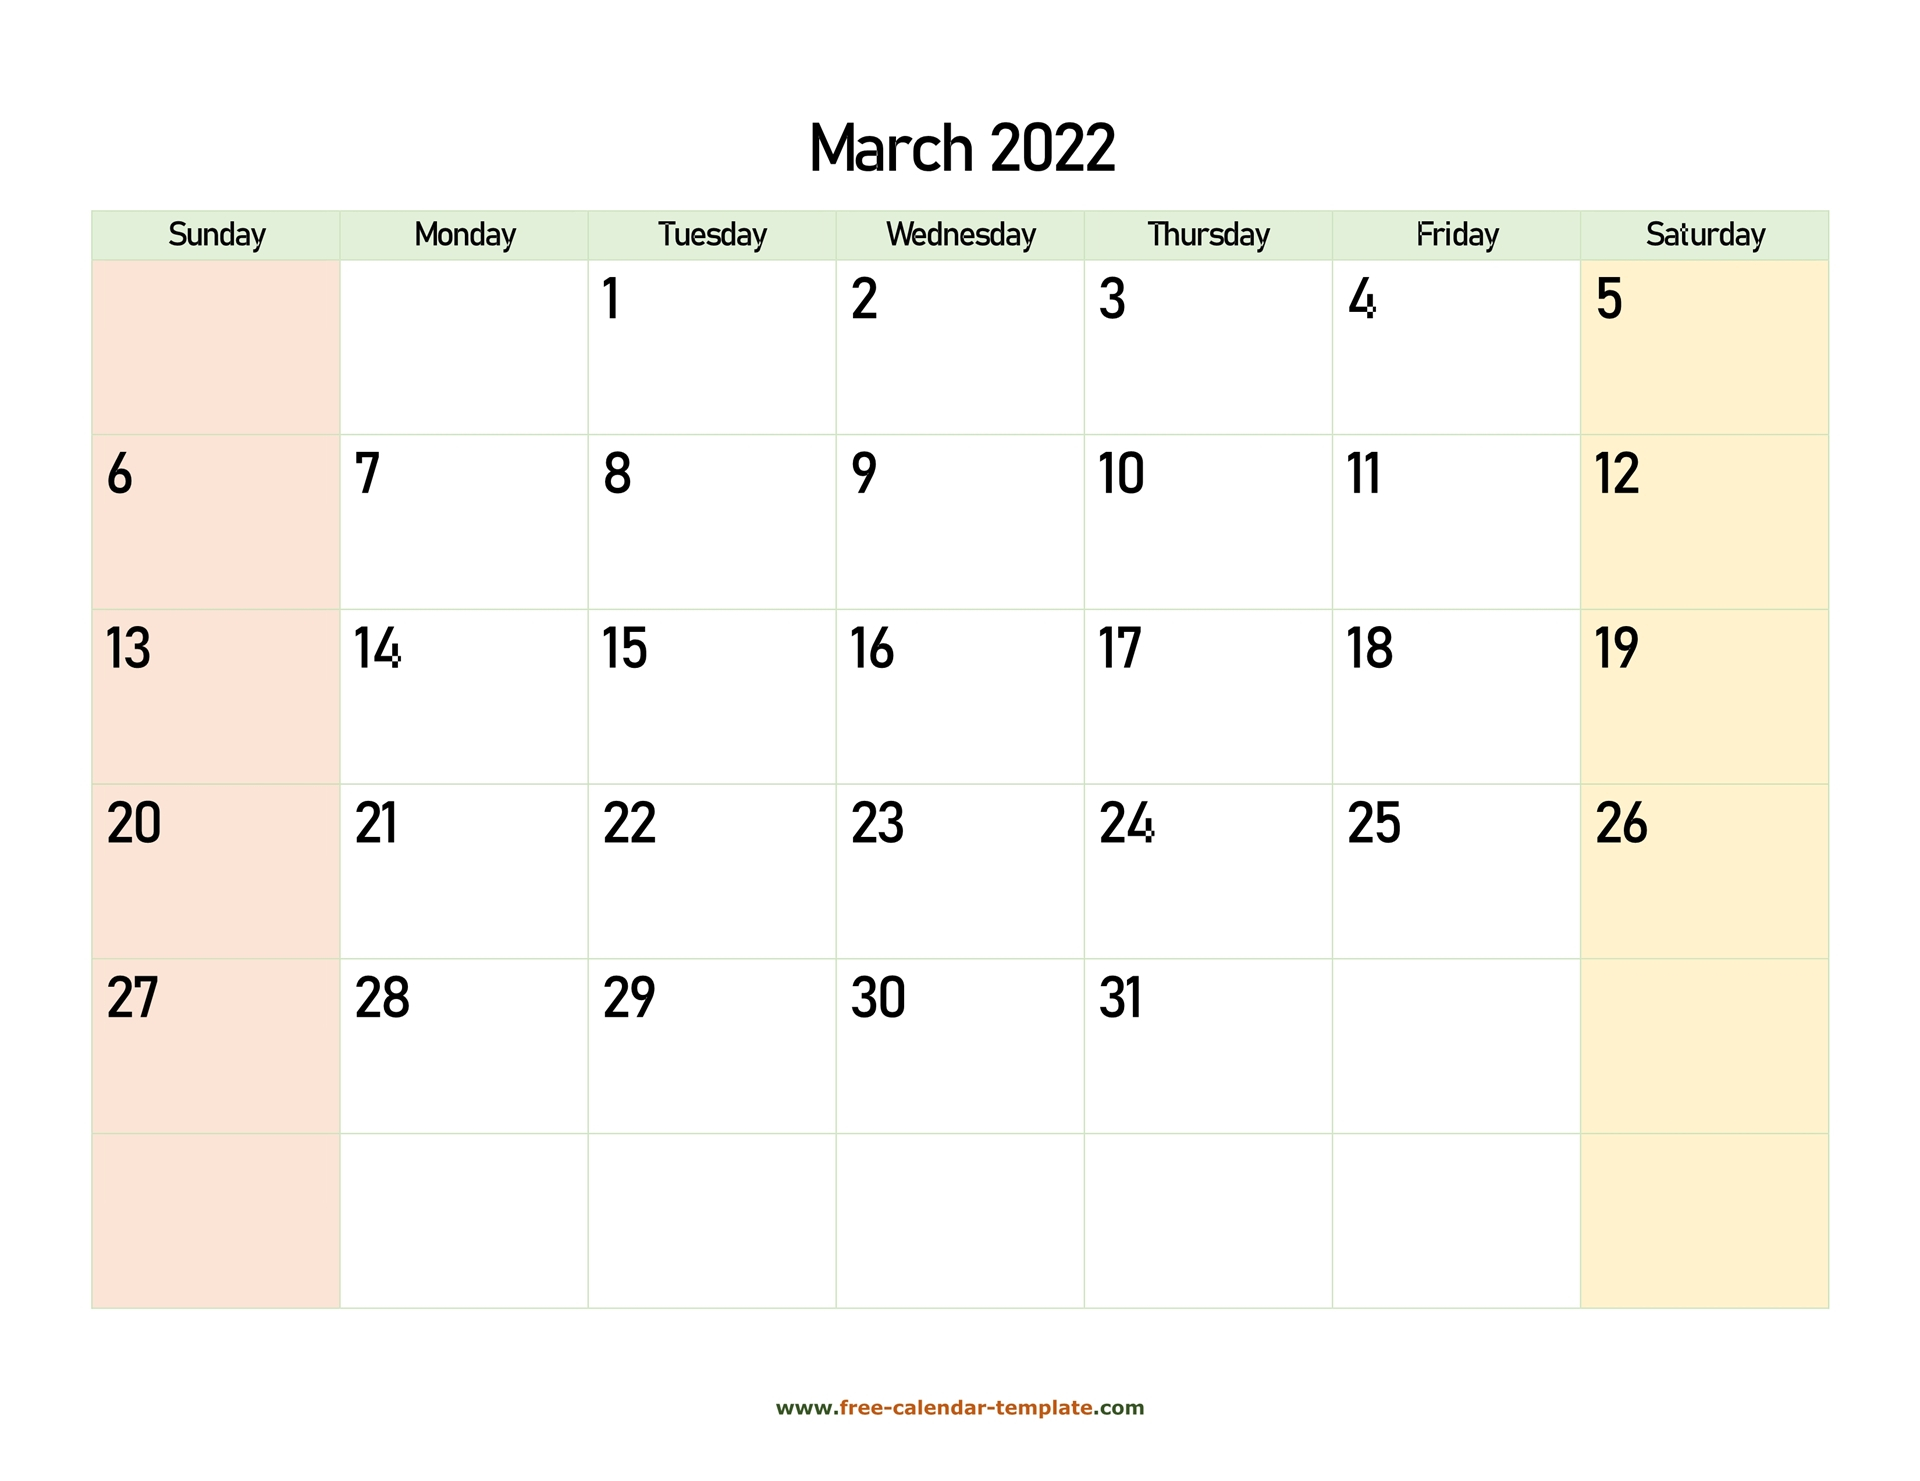 March 2022 Calendar Printable With Coloring On Weekend For Printable Calendars 2022 March